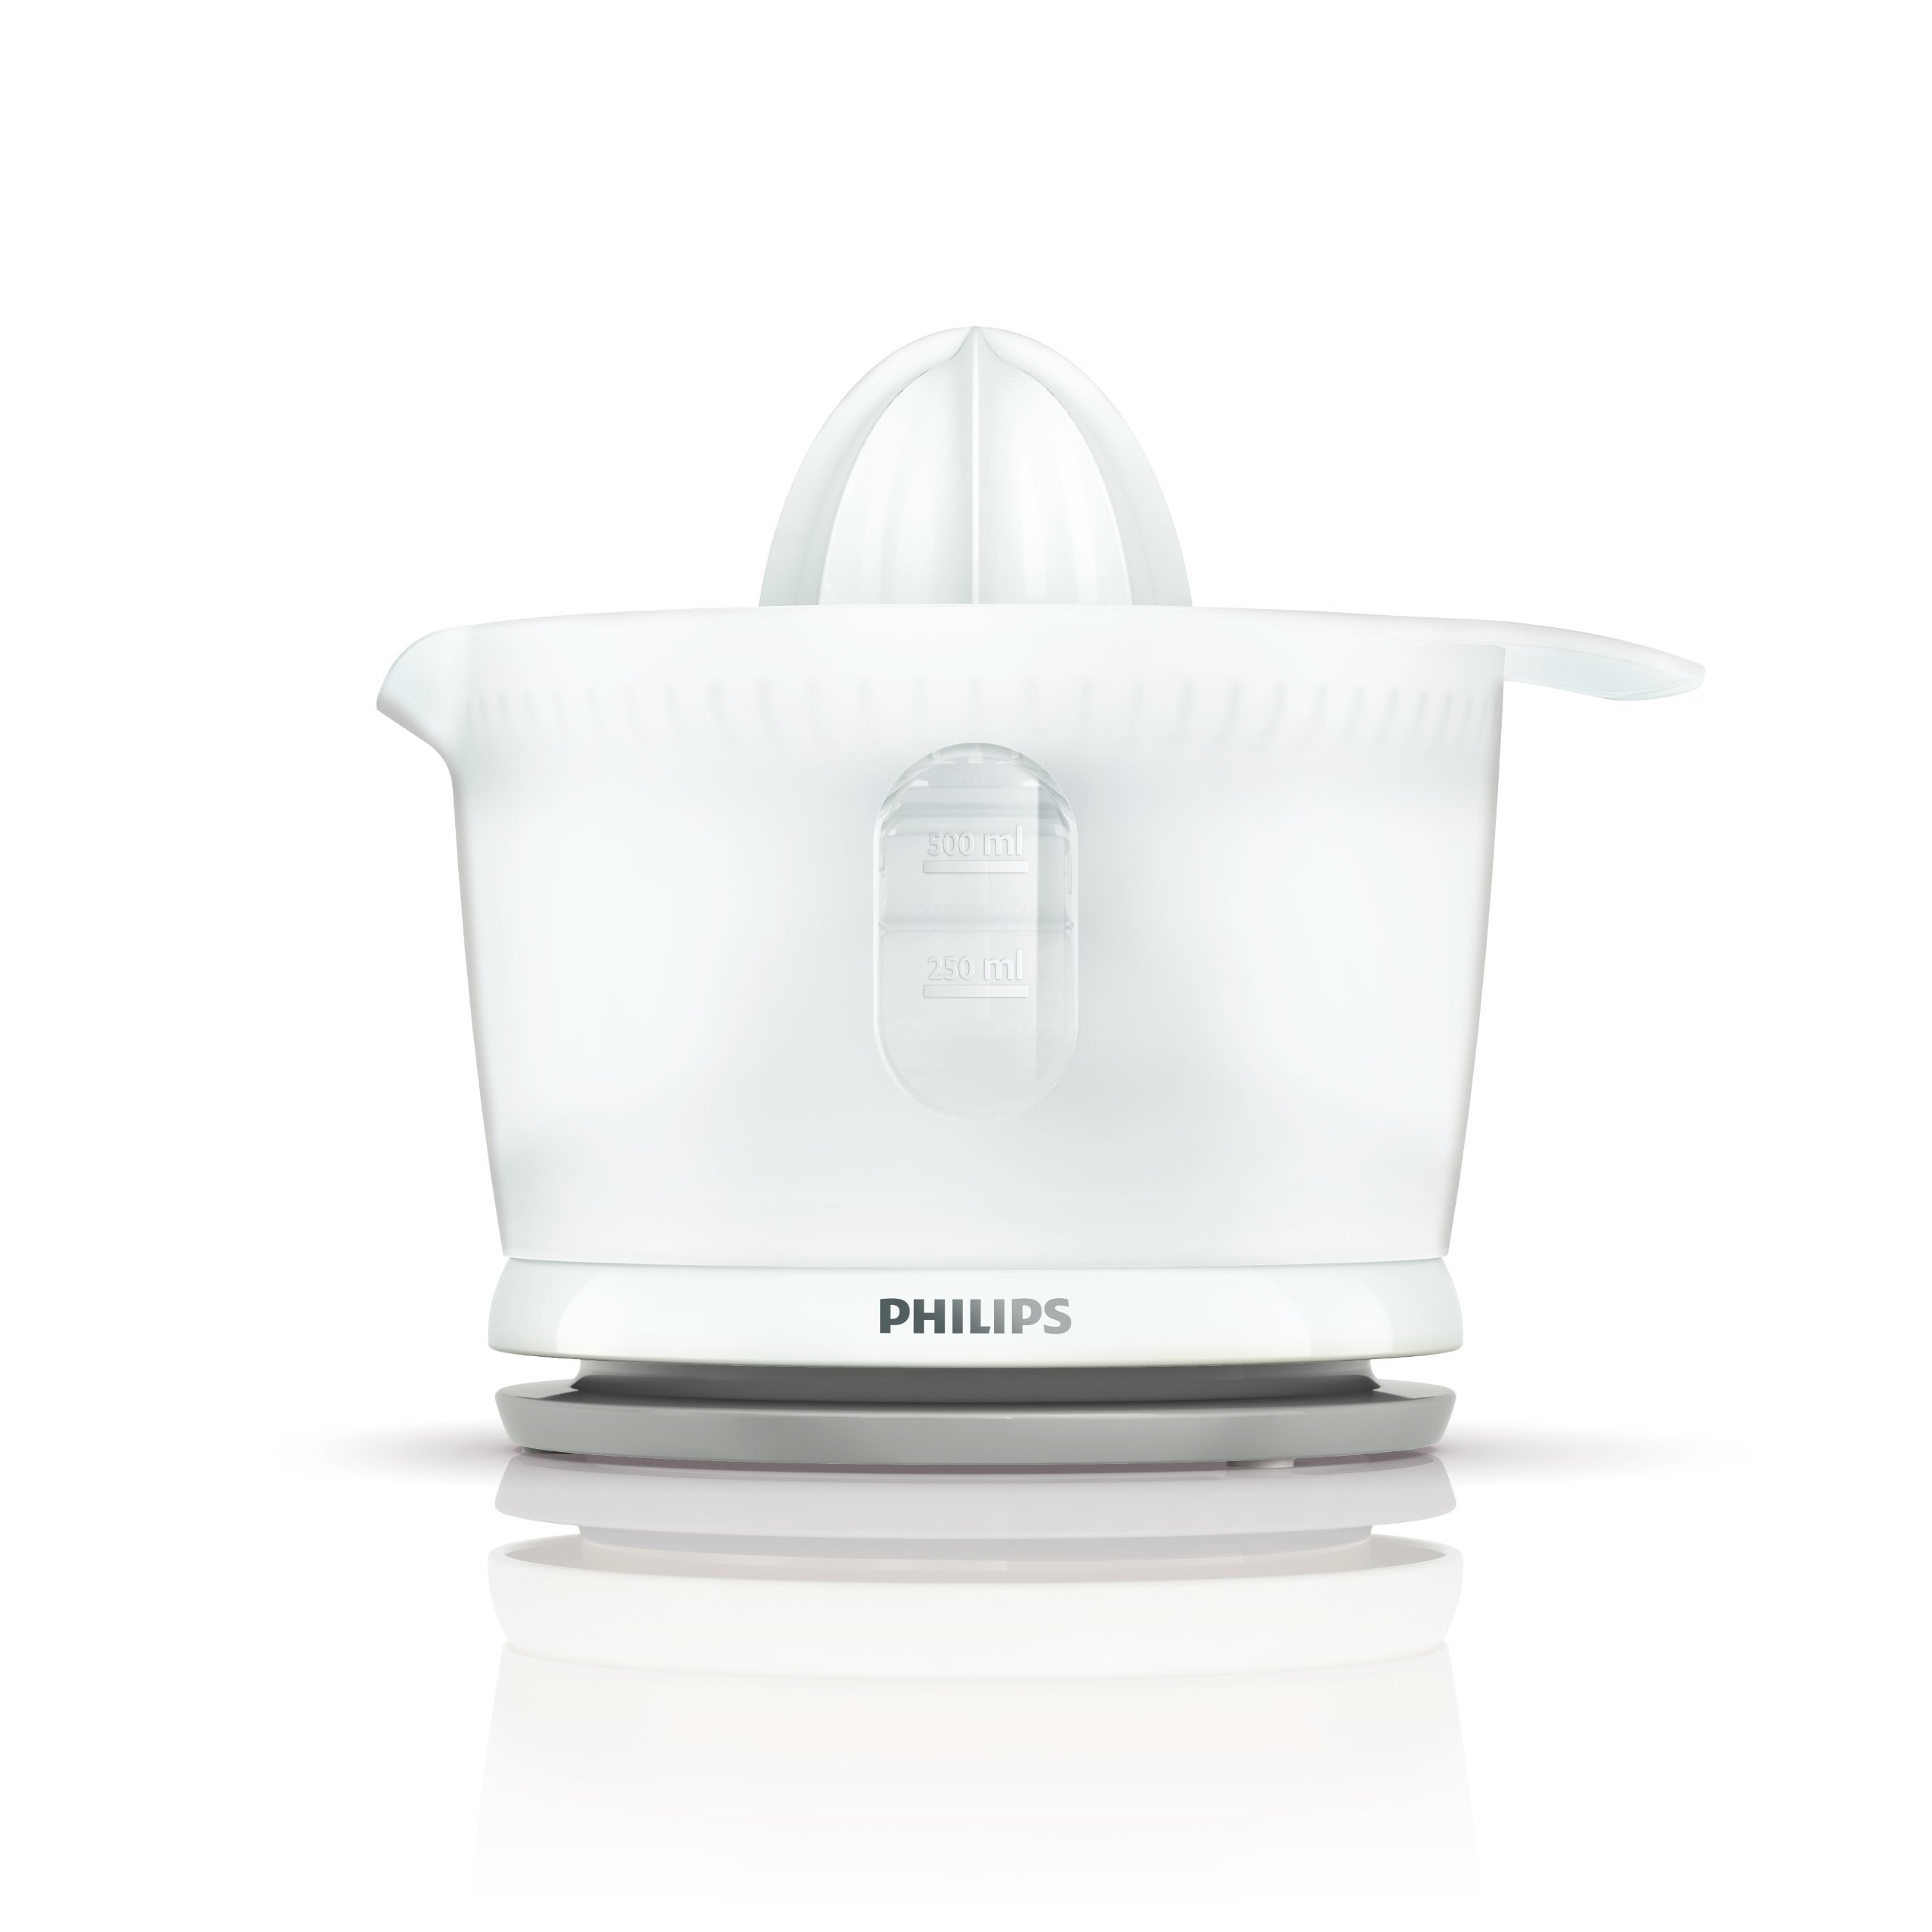 Philips Daily HR2738/00 - Exprimidor, Color Blanco product image